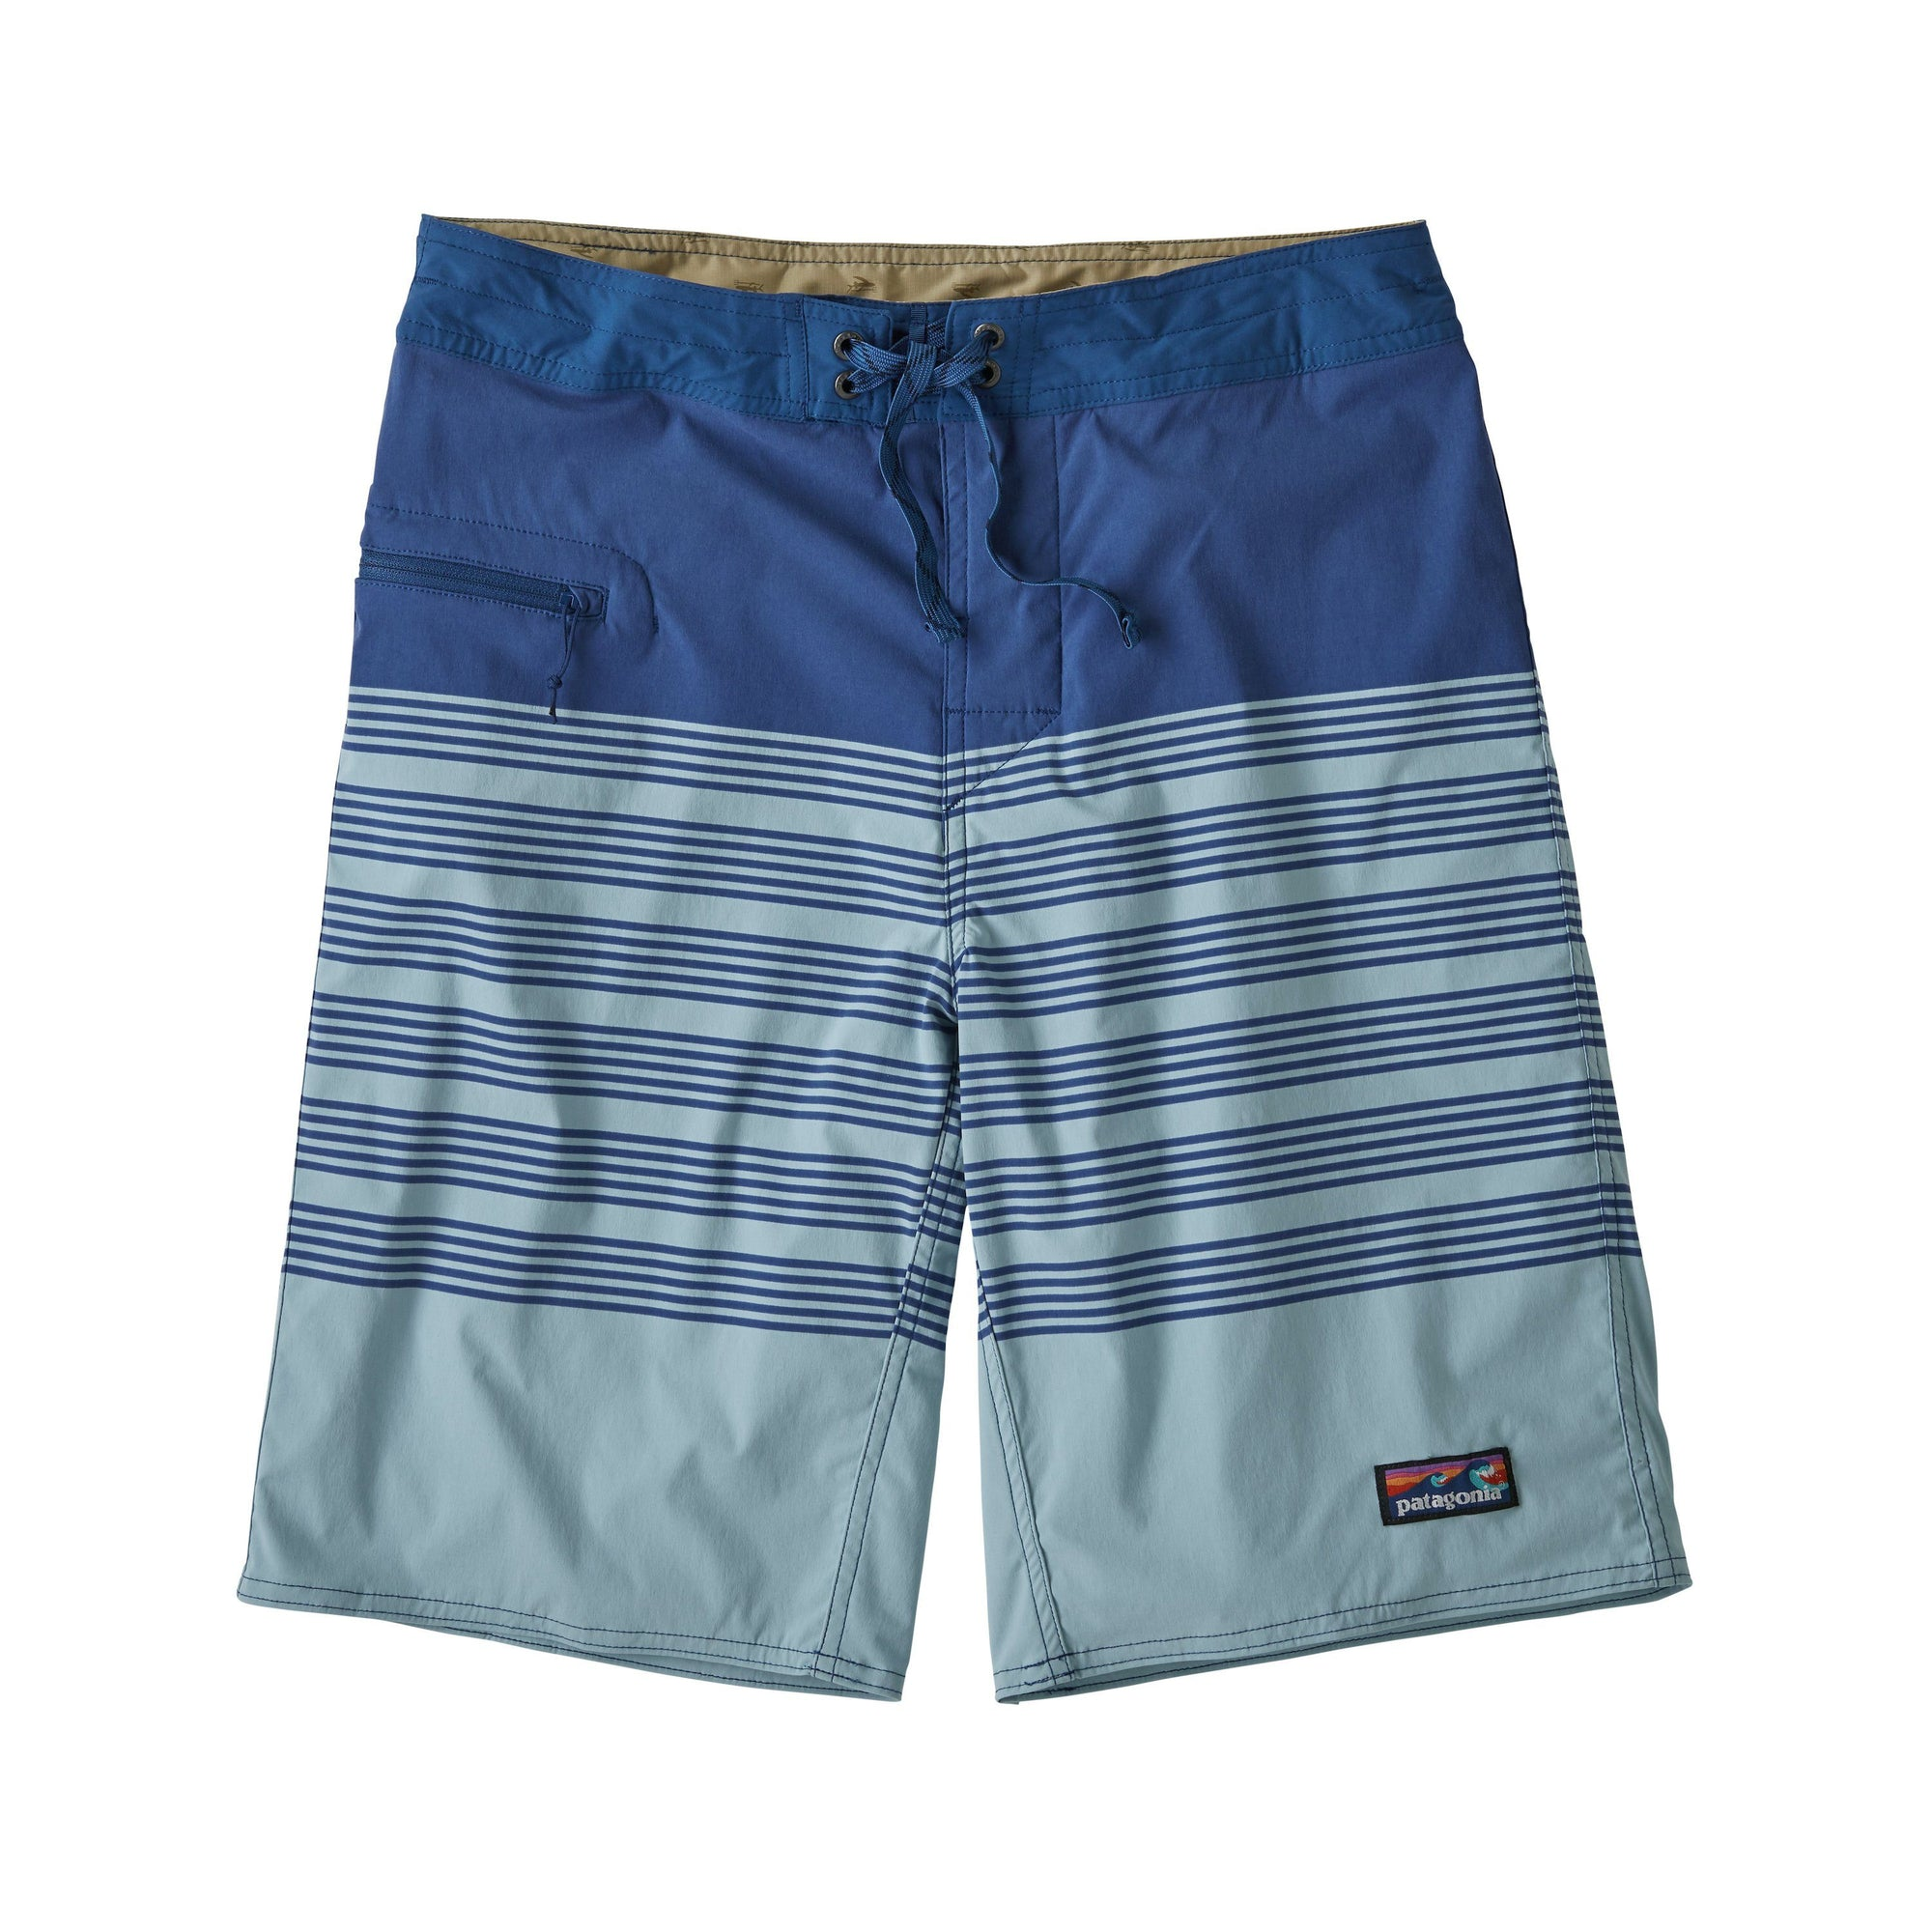 Patagonia - M's Stretch Wavefarer® Boardshorts - 53 cm outseam -  Recycled Nylon - Weekendbee - sustainable sportswear